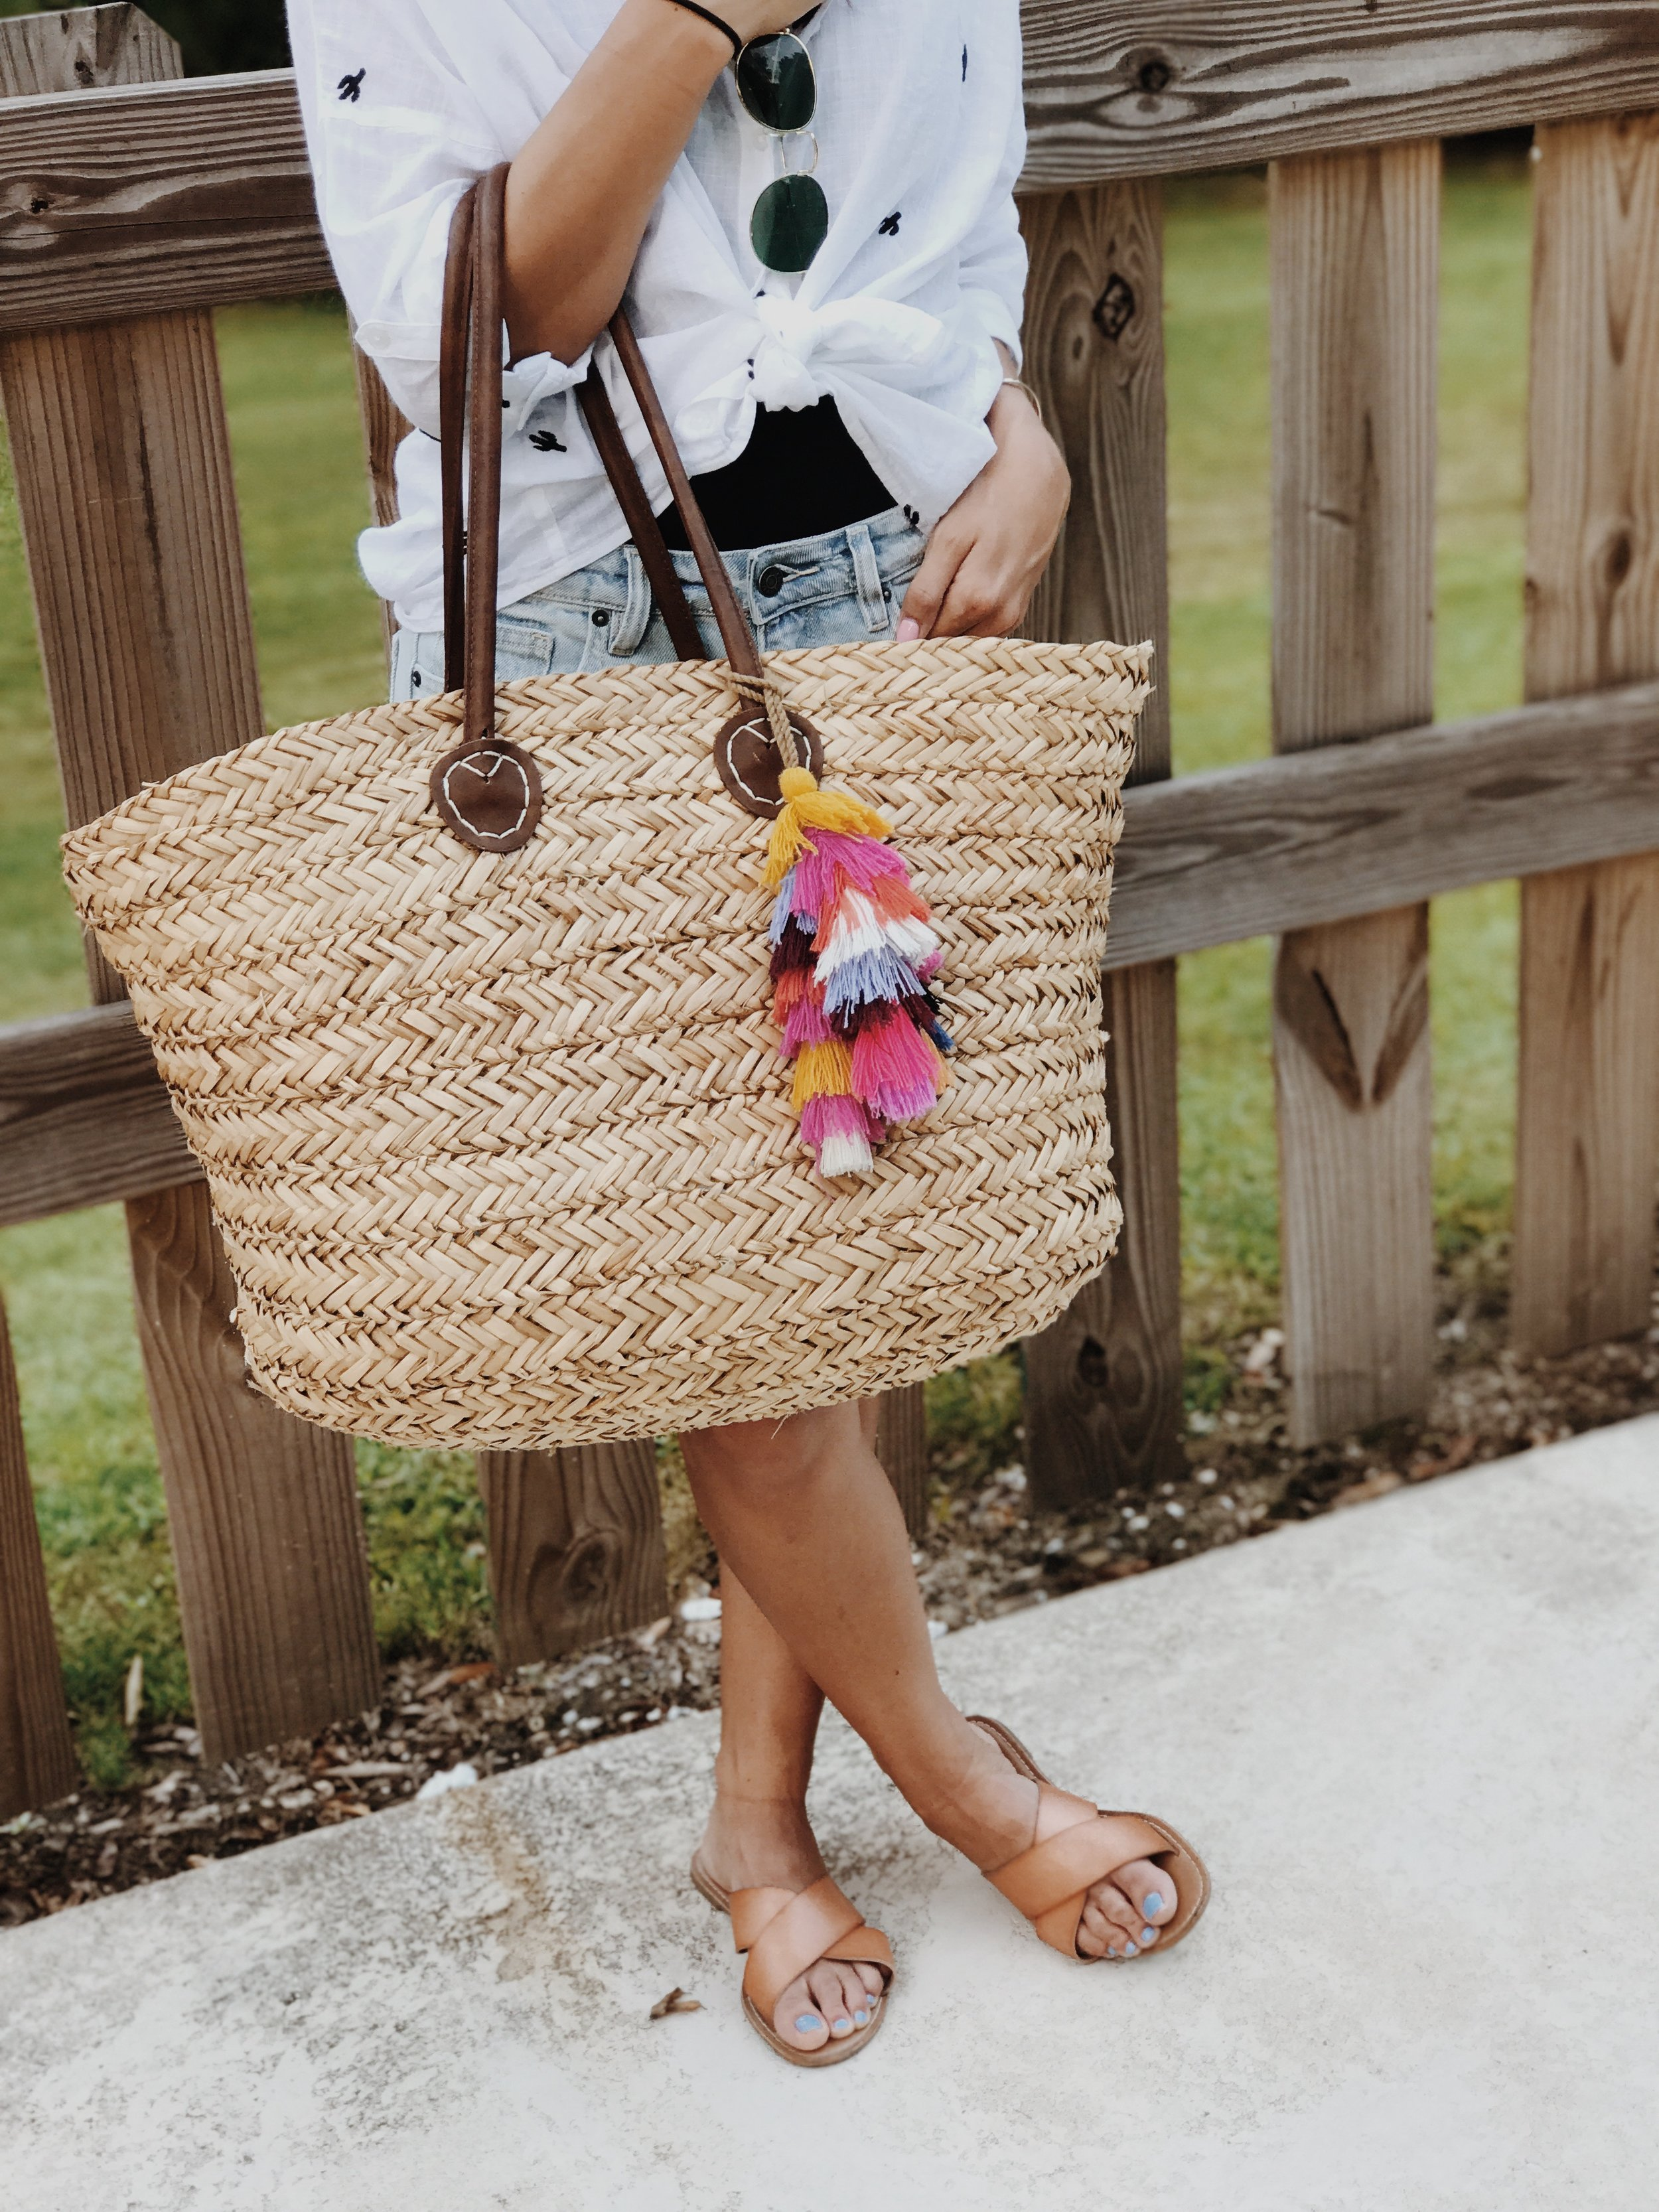 Tassel beach tote - I scored this tote from Target, and it has plenty of room for anything you could ever need!